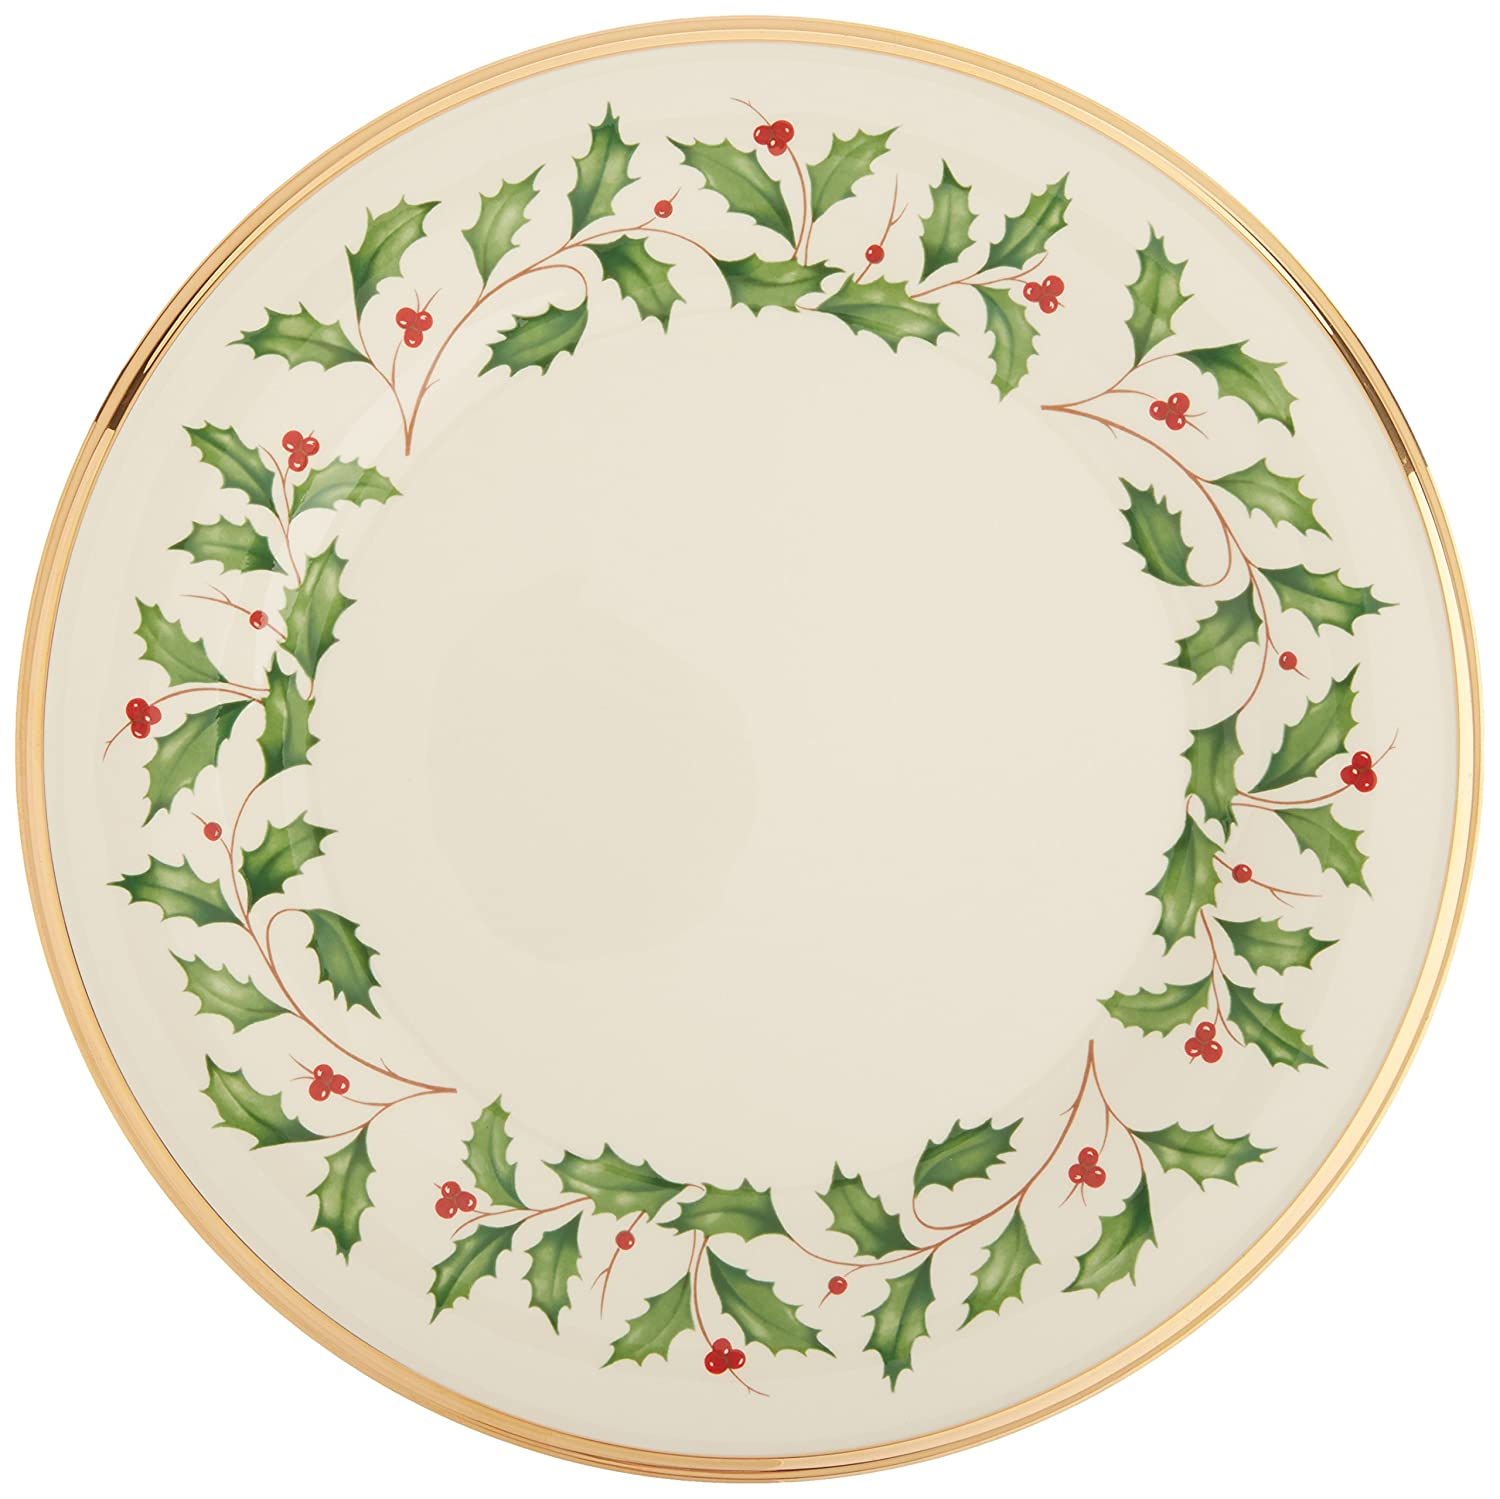 Amazon.com: Lenox Holiday Dinner Plate: Lenox Holiday Dinner Plate ...